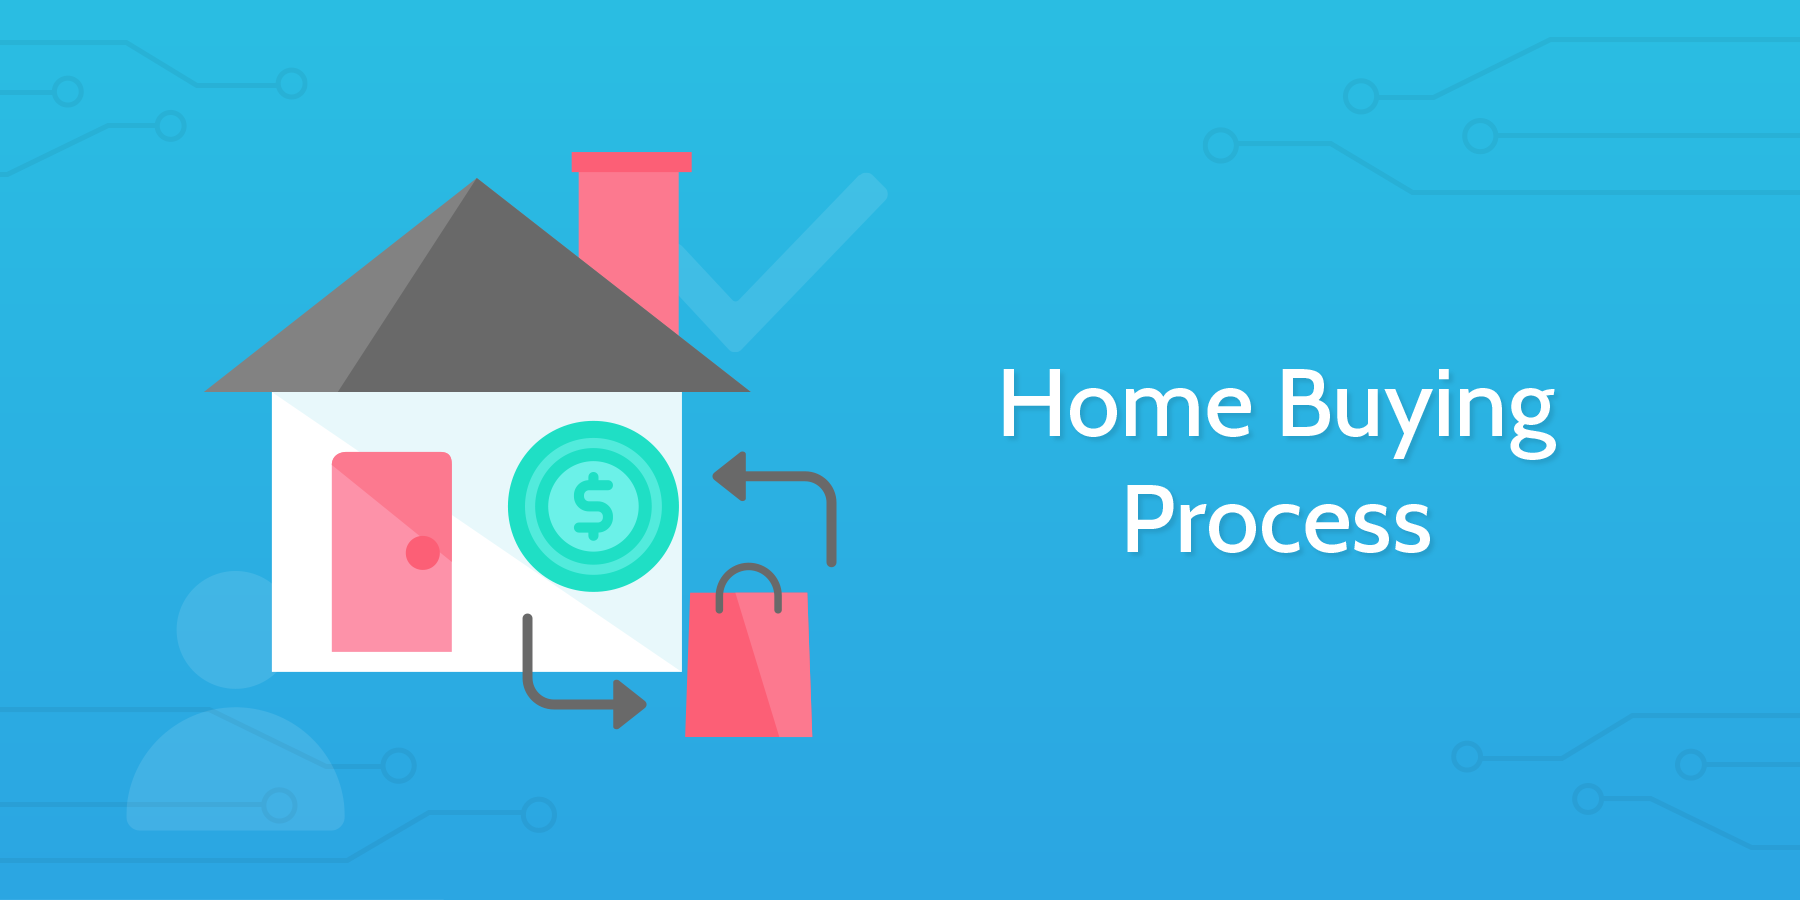 Home Buying Process